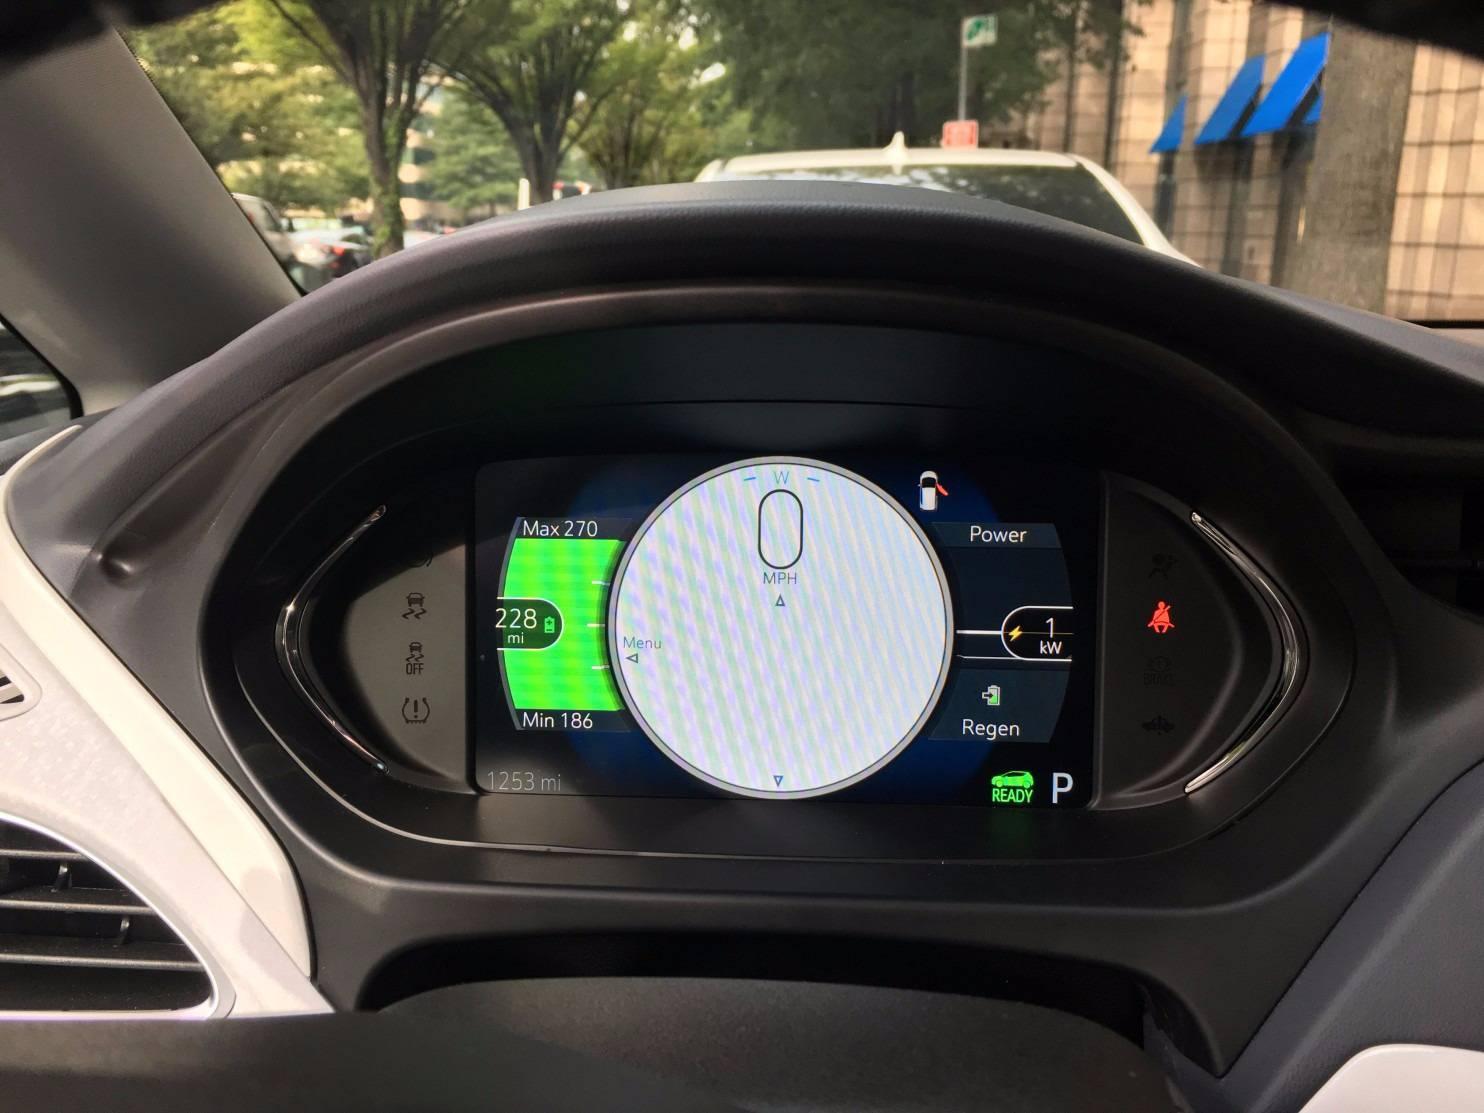 Range meter display on the Chevy Bolt.